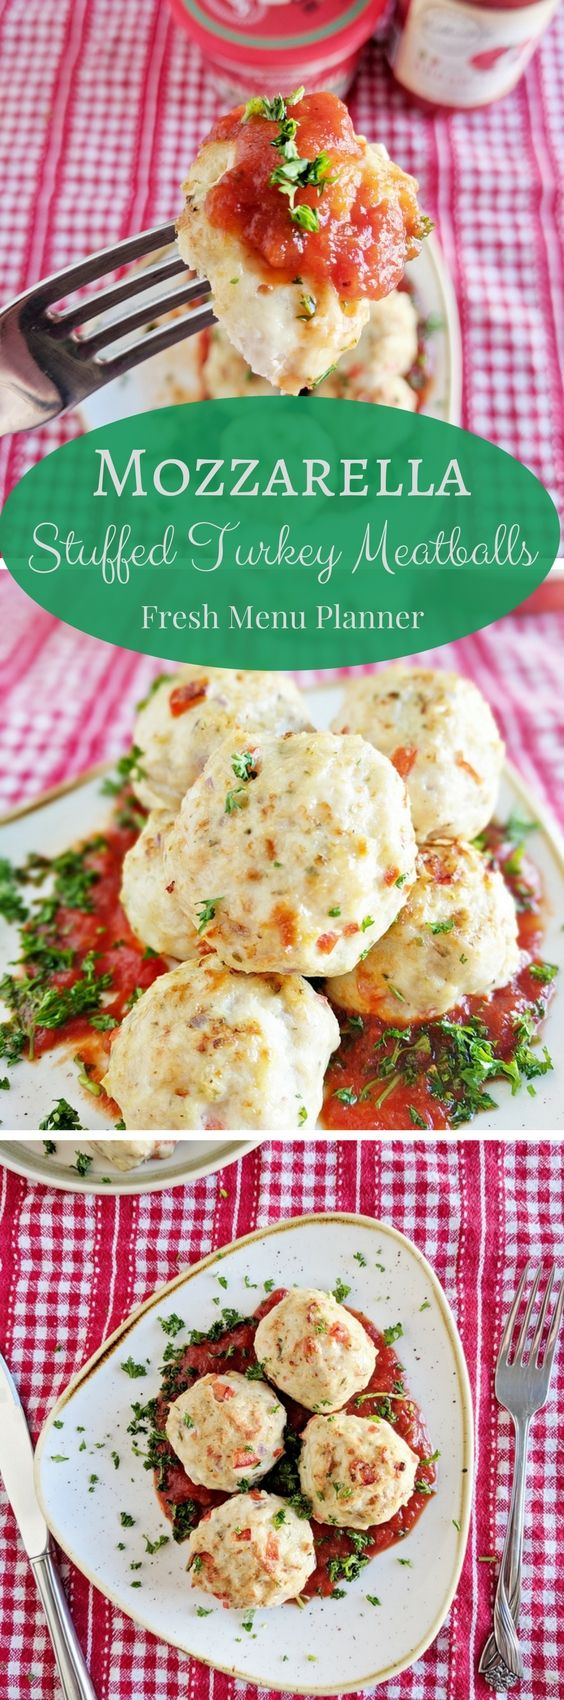 These mozzarella stuffed turkey meatballs are high in protein, and are great with pasta, veggies and starches, or just by themselves as a tasty snack!  They are gluten free too!